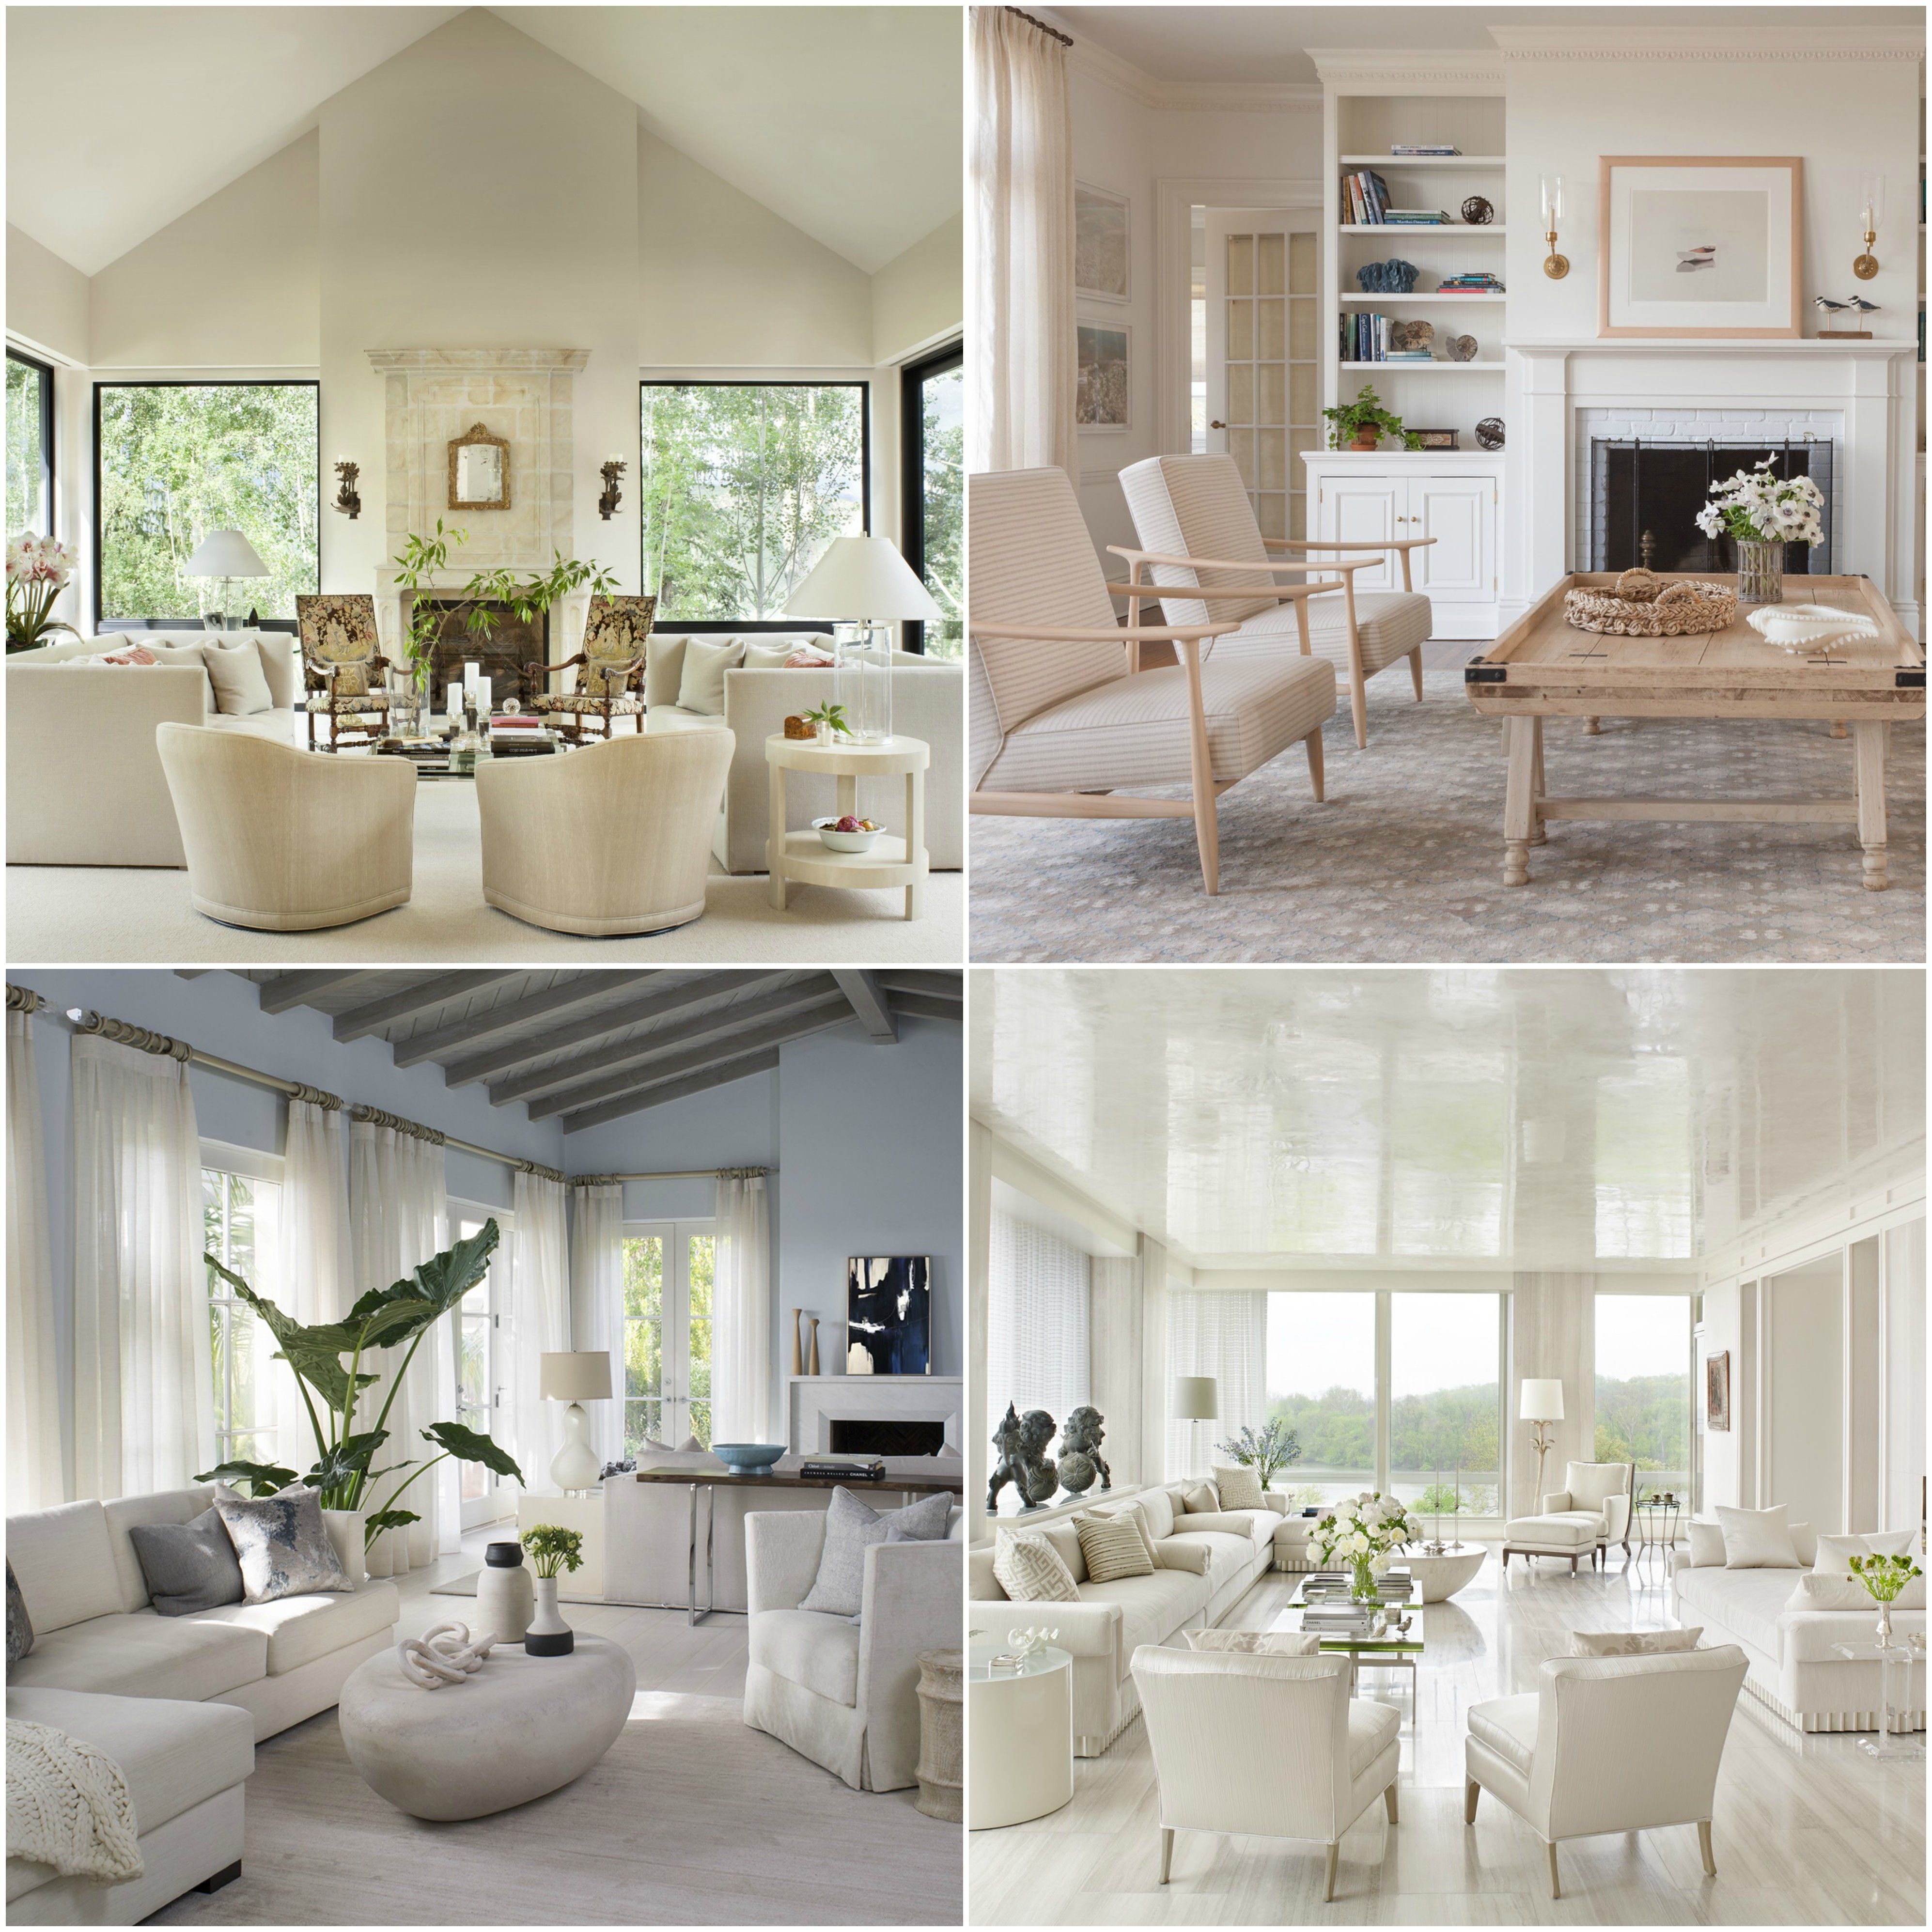 all white living rooms with layered textures bring a sense